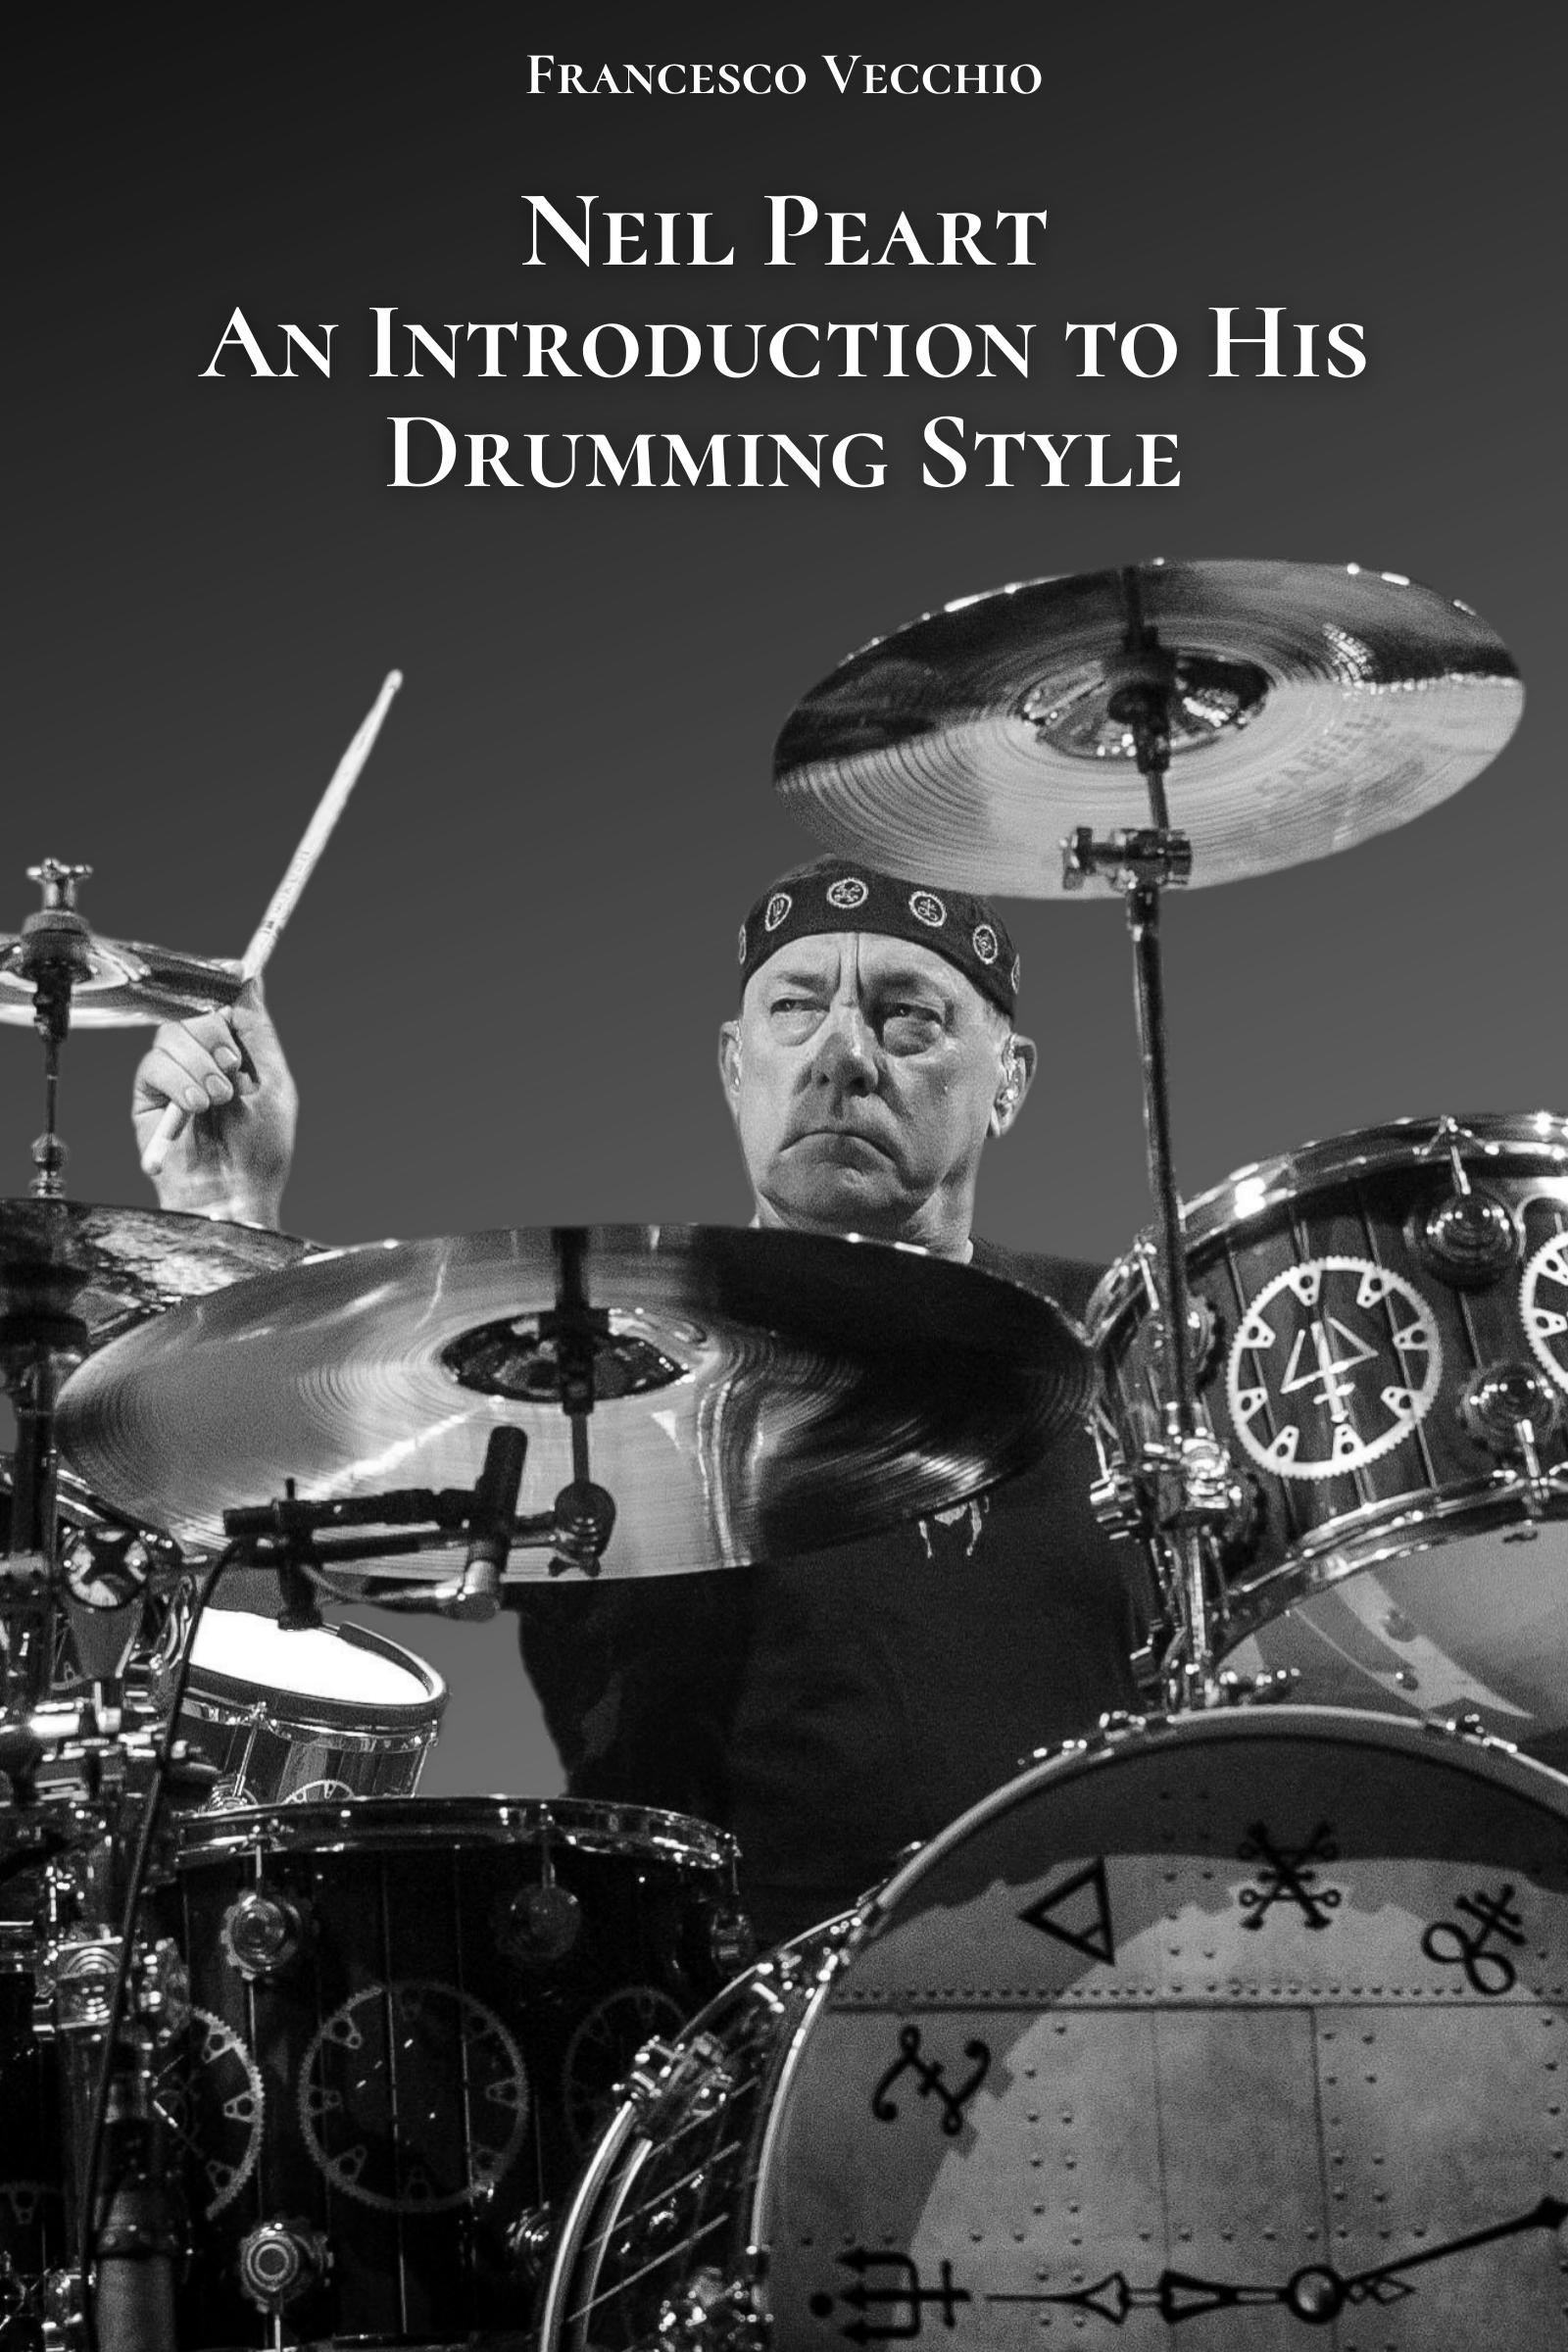 neil peart an introduction to his drumming style